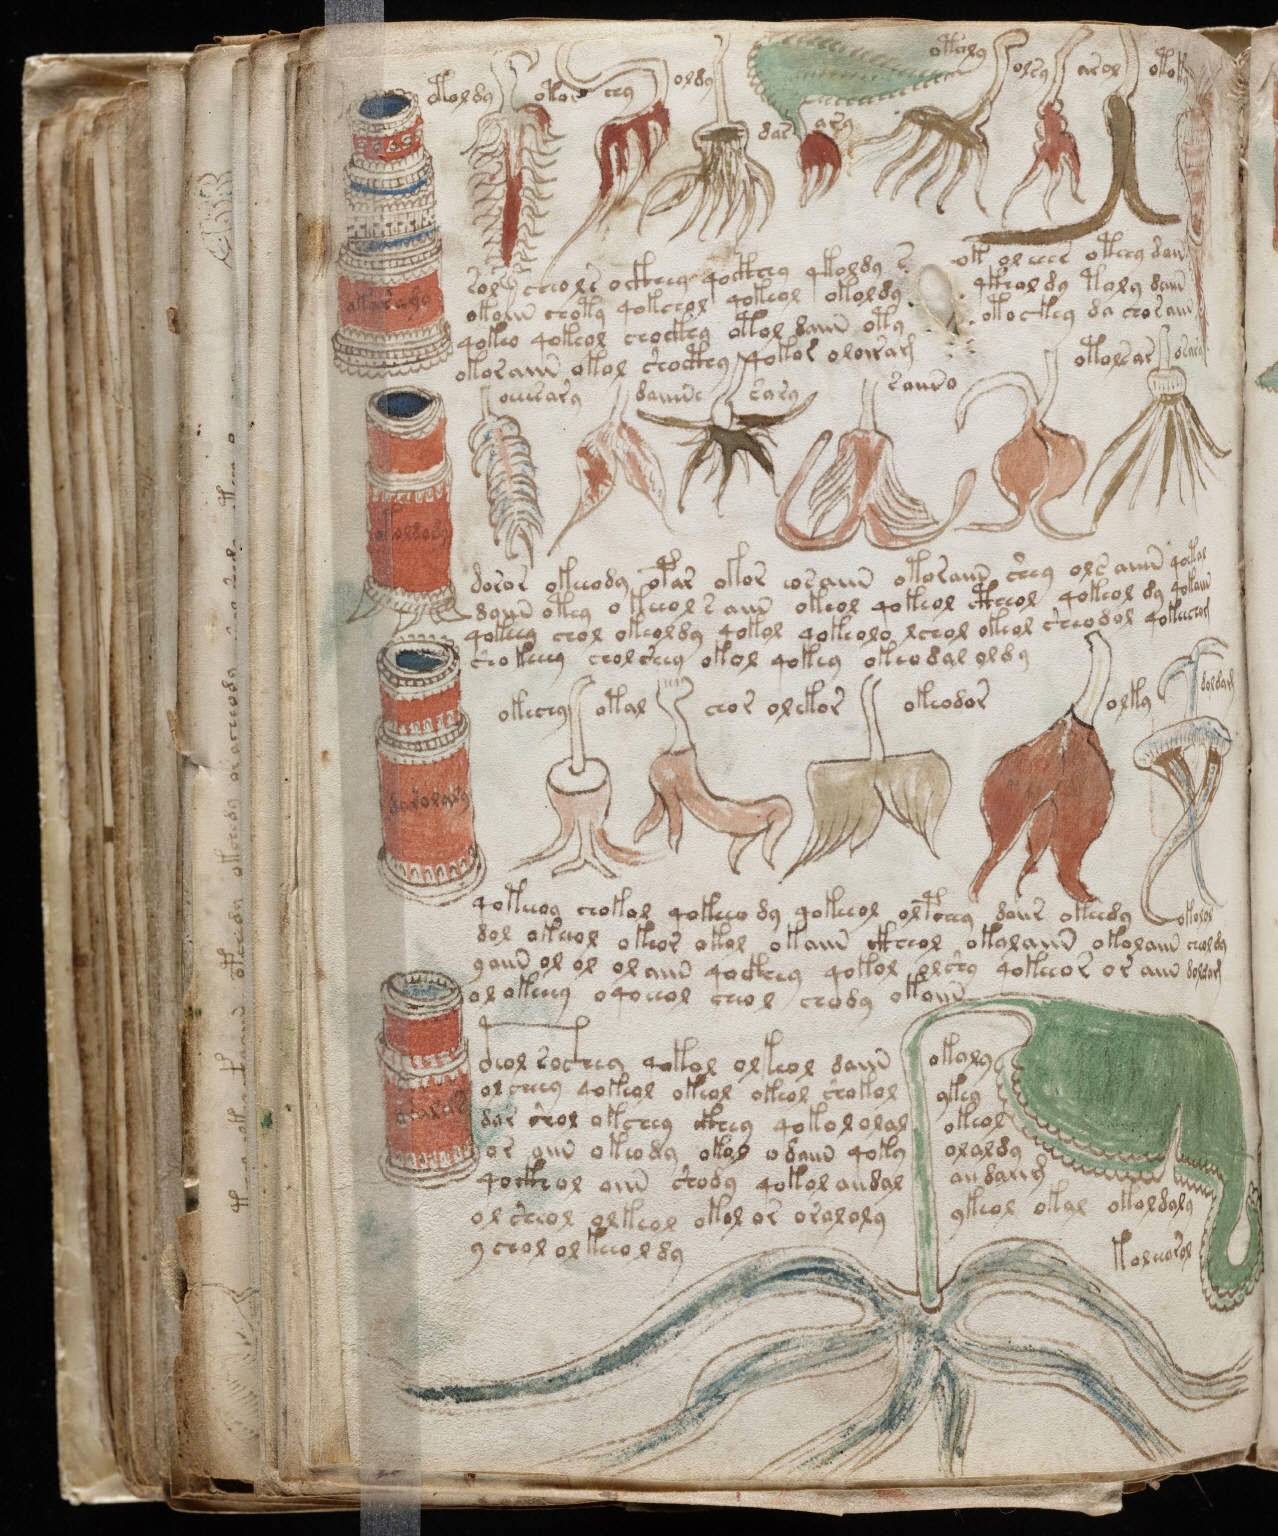 Kislak Center for Special Collections, Rare Books and Manuscripts